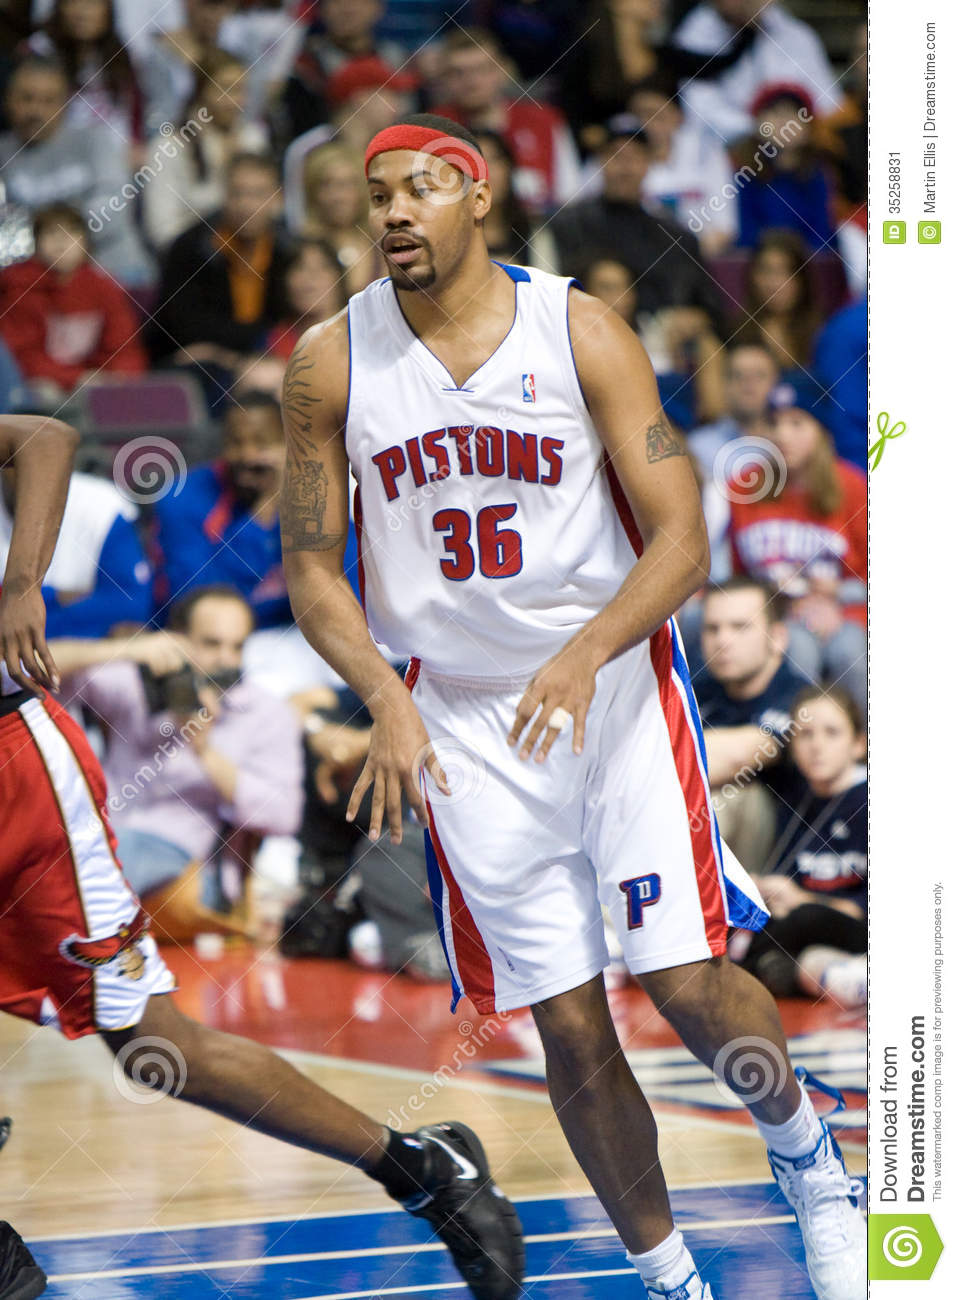 Rasheed Wallace Watches The Play Editorial Image